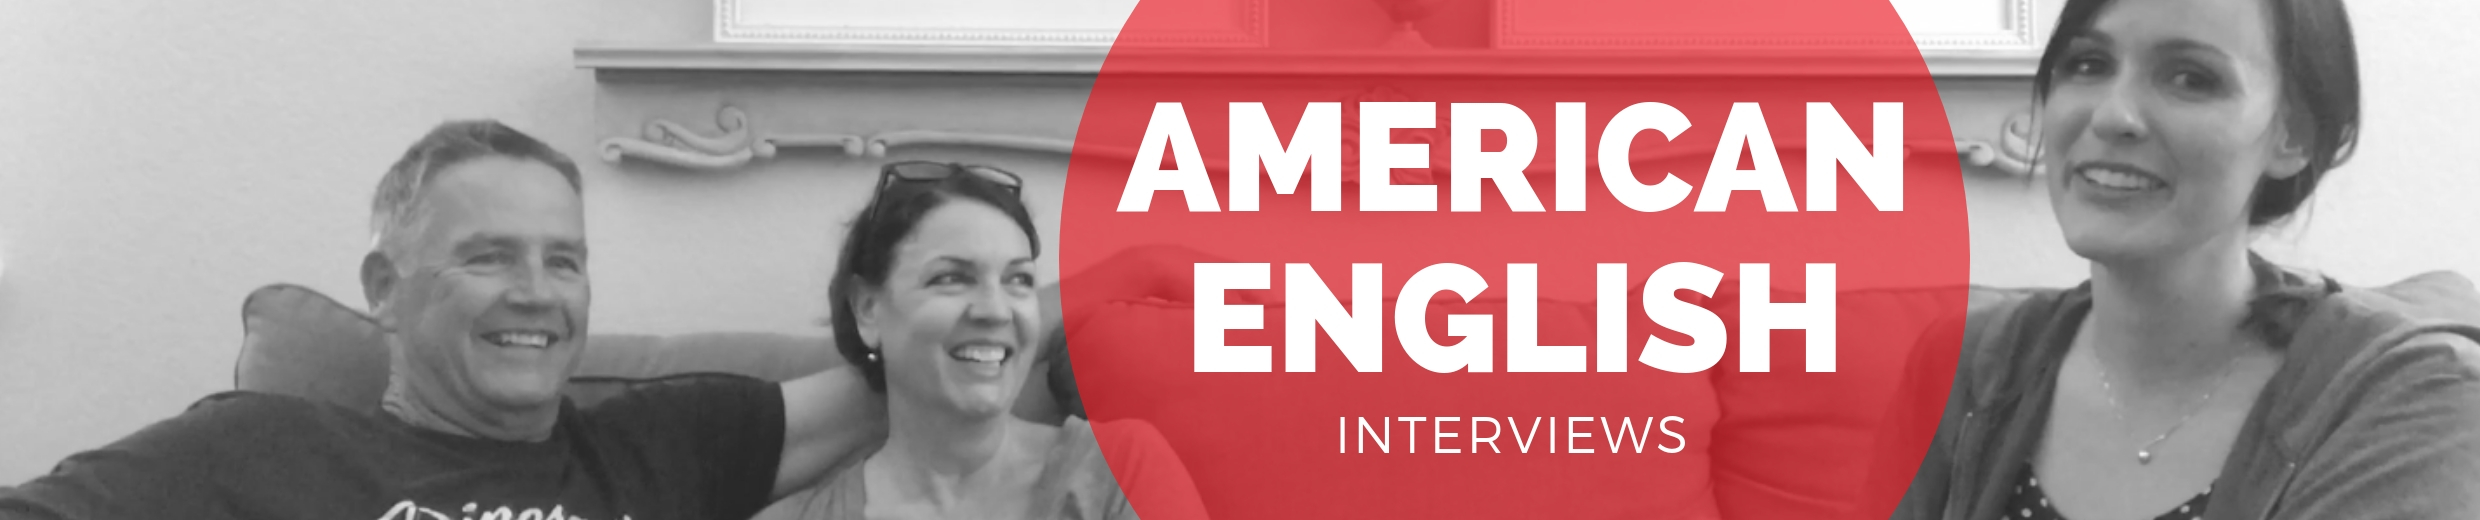 American English Interviews by The American English Podcast